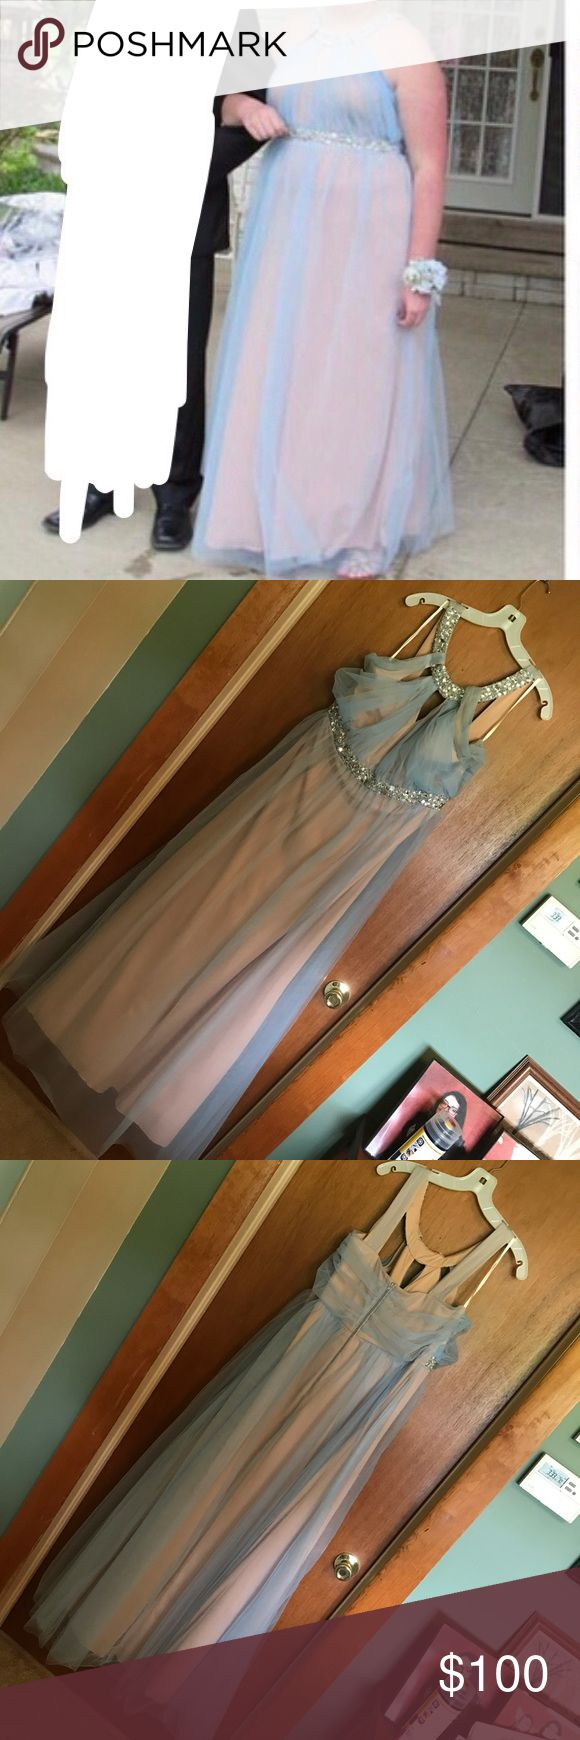 David's Bridal Formal Dress Blue/Nude Formal dress / prom gown from David's Bridal. It is nude underneath with a layer of light blue tulle over top. GREAT condition, nothing wrong with it, only worn once and kept in storage in a dress bag since then so it would stay in great condition. It zips up in the back. Size 17. Any questions feel free to ask. Originally $200. Price is negotiable, make an offer! David's Bridal Dresses Prom